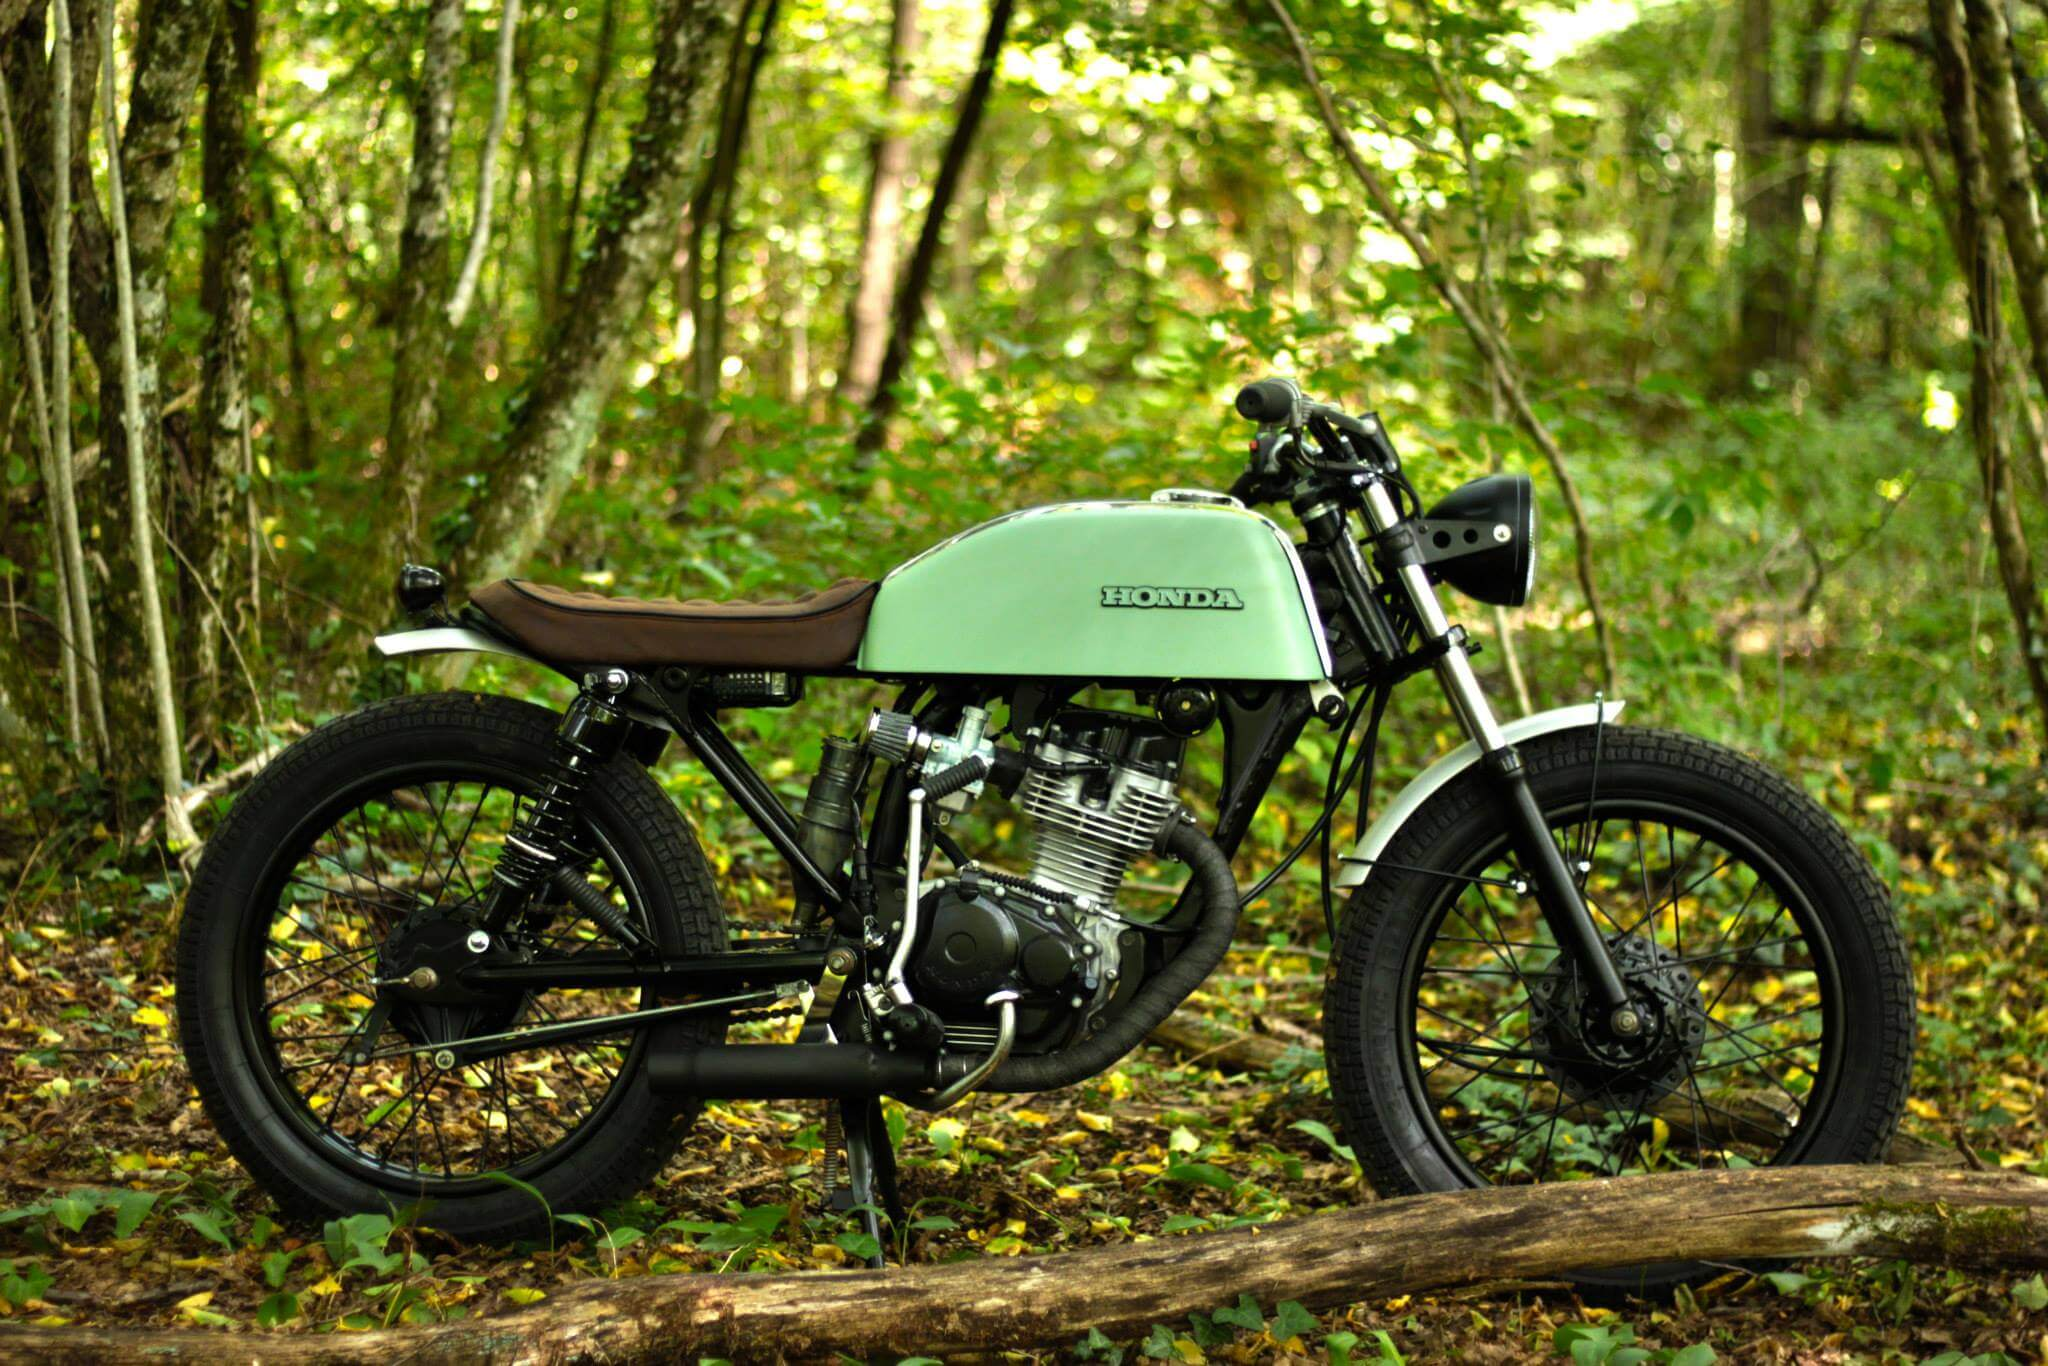 Honda Cb 125 Cg By Frenchmonkeys Bikebrewers Com